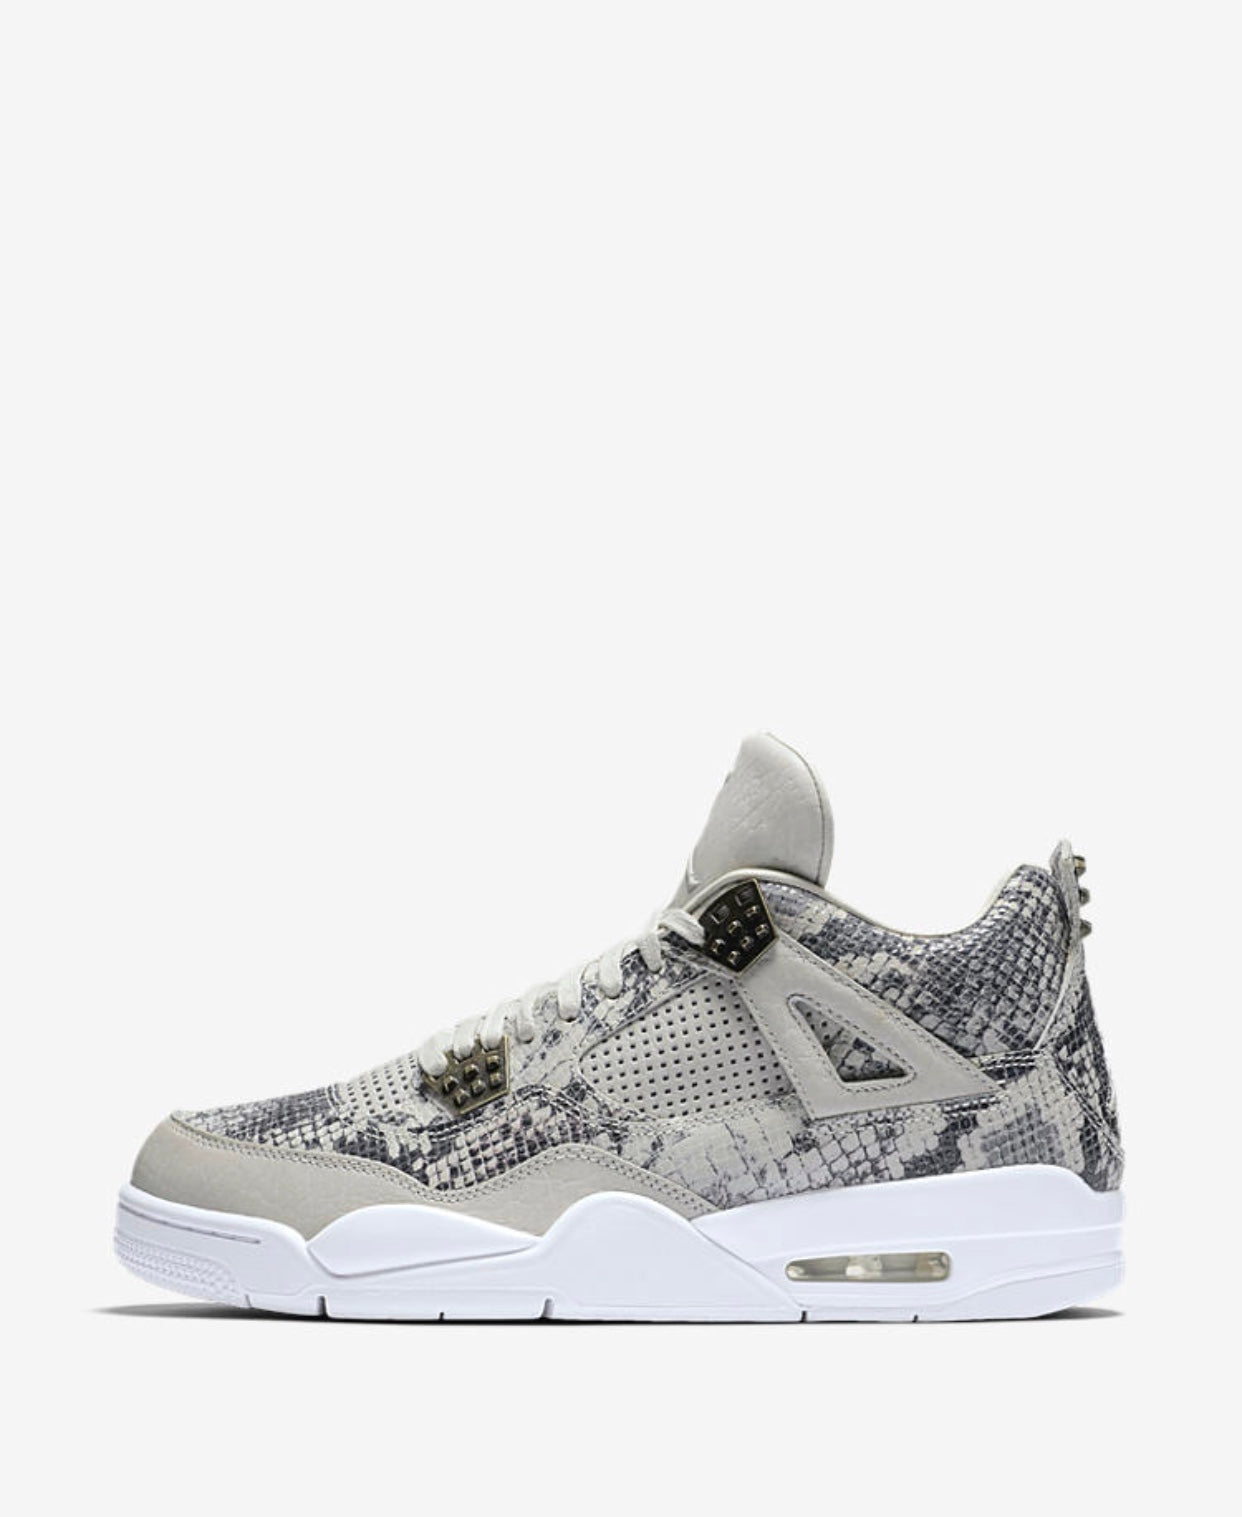 9b664dca712 AIR JORDAN 4 RETRO PREMIUM